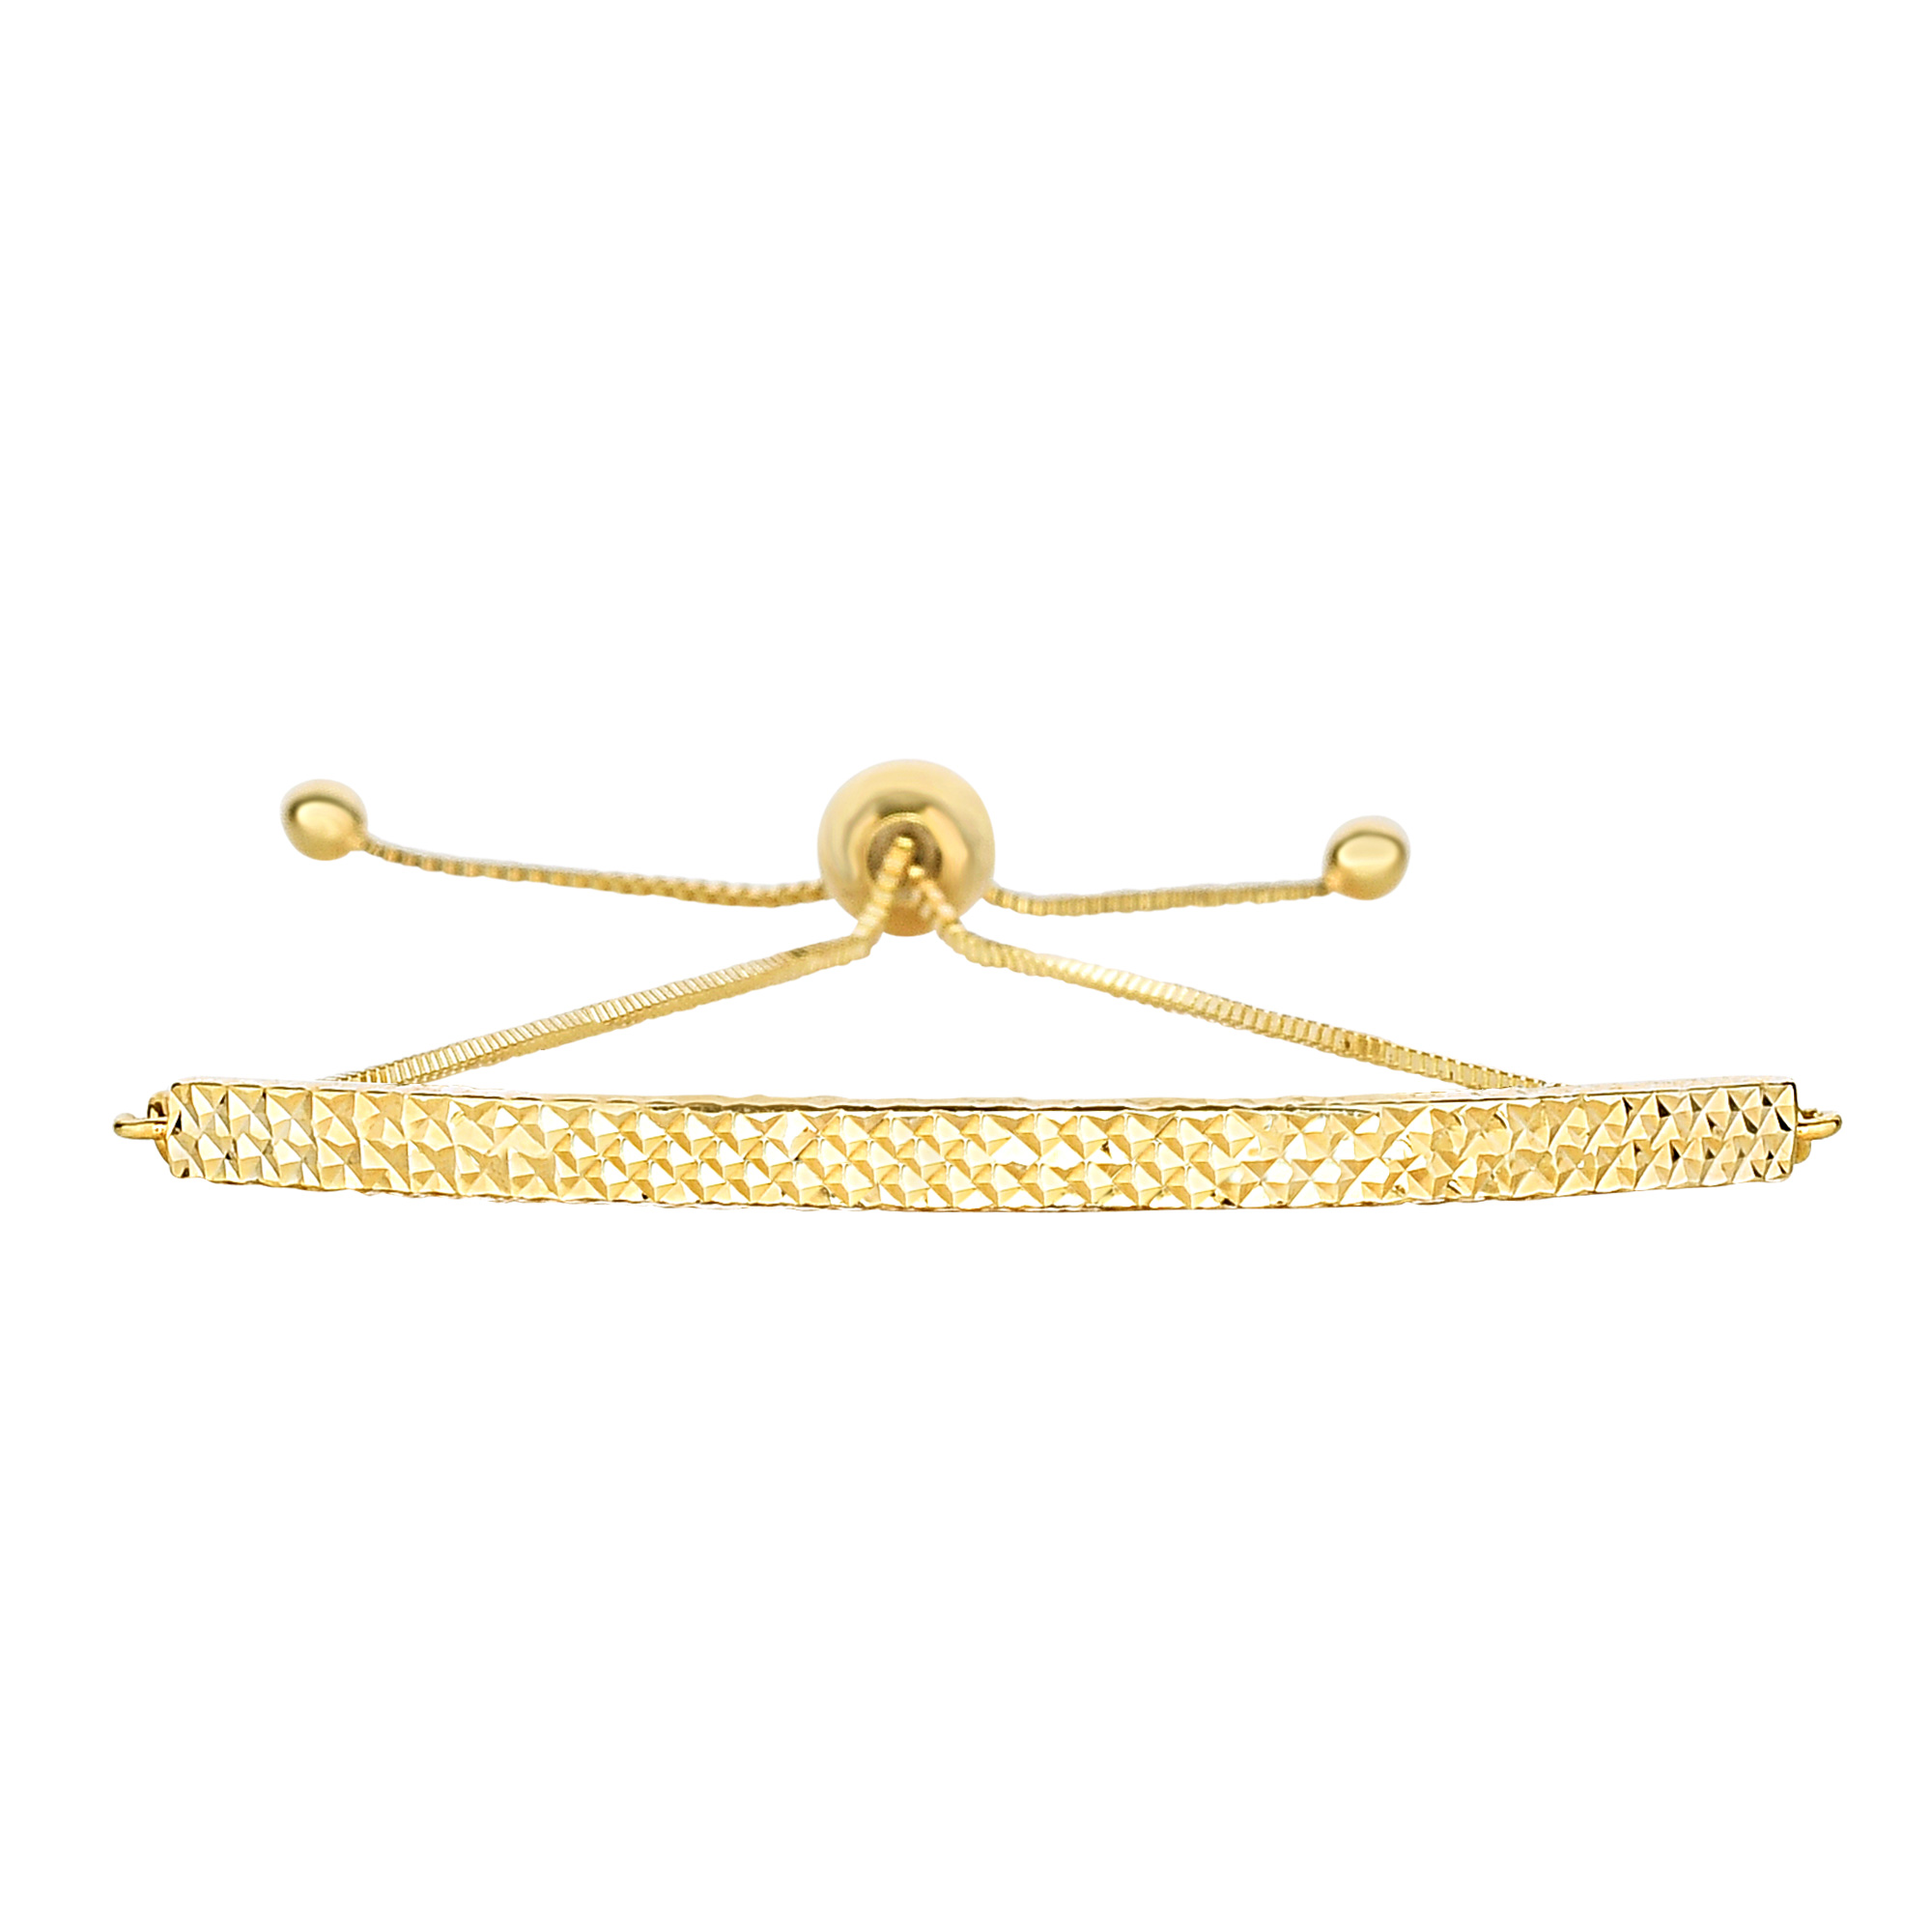 14K Yellow Gold Diamond Cut Curved Bar Element Anchored on Box Chain Adjustable Bracelet , 9.25″